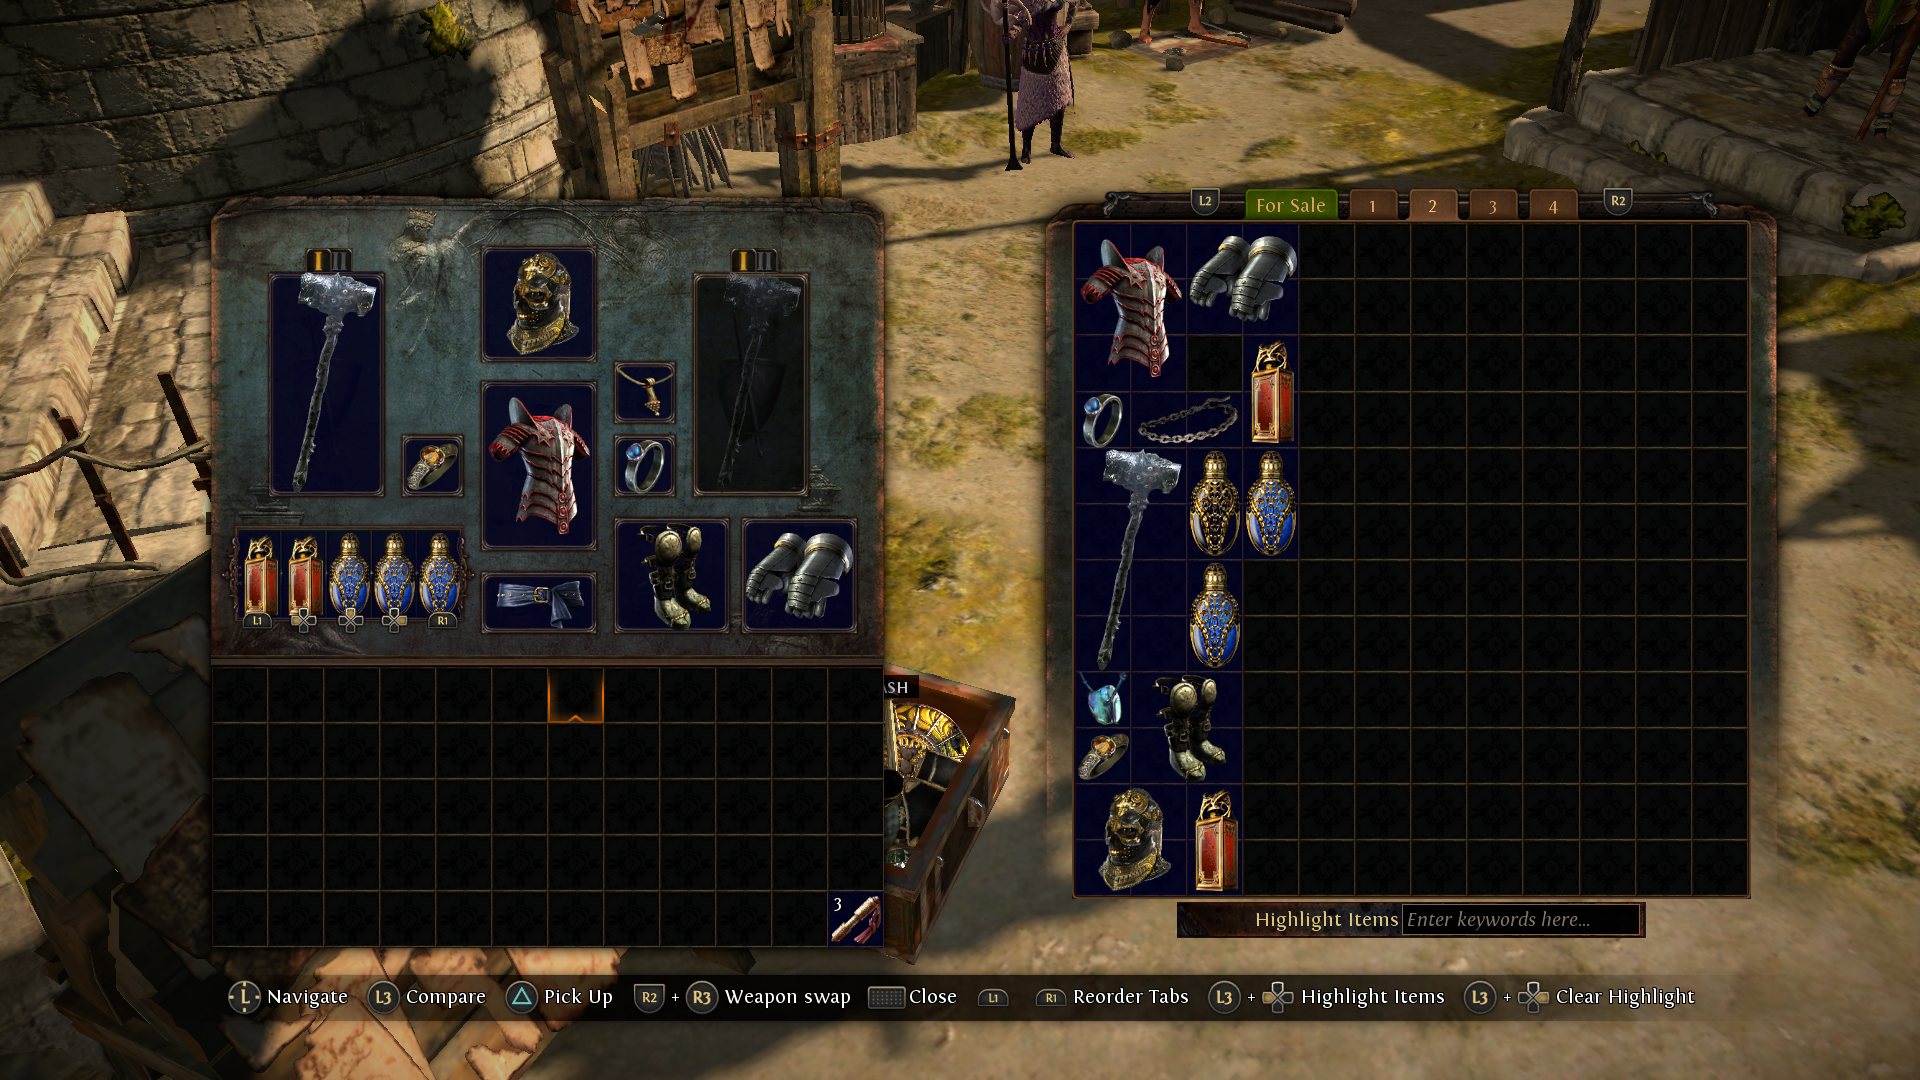 10 developer tips to survive Path of Exile as the action RPG